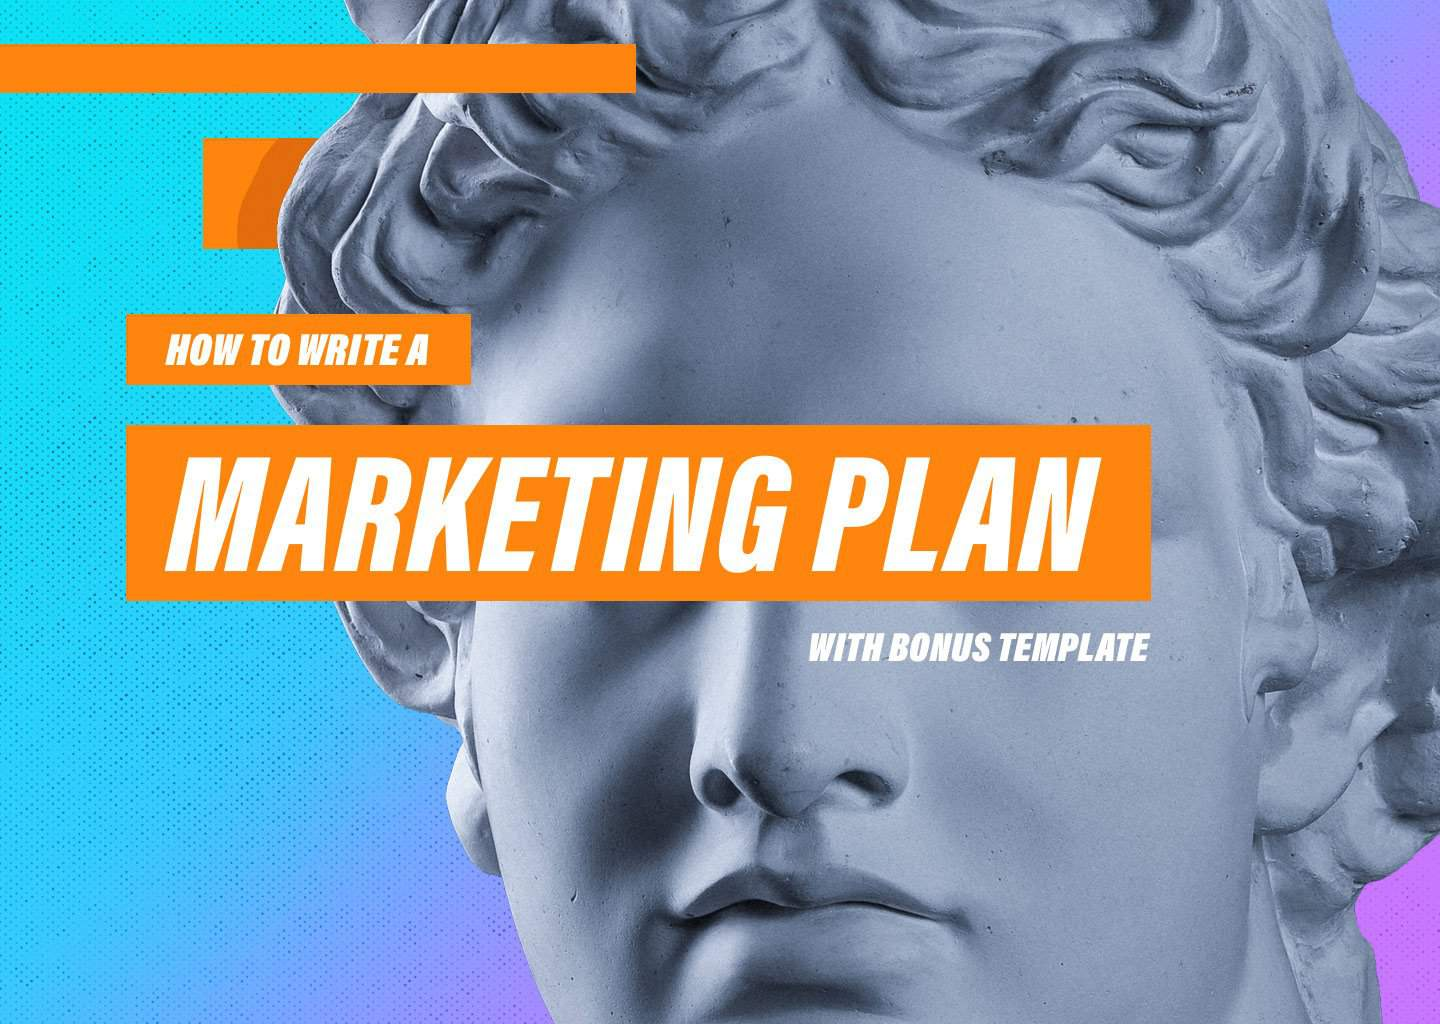 How to Write a Marketing Plan: A Comprehensive Guide [w/ Templates]